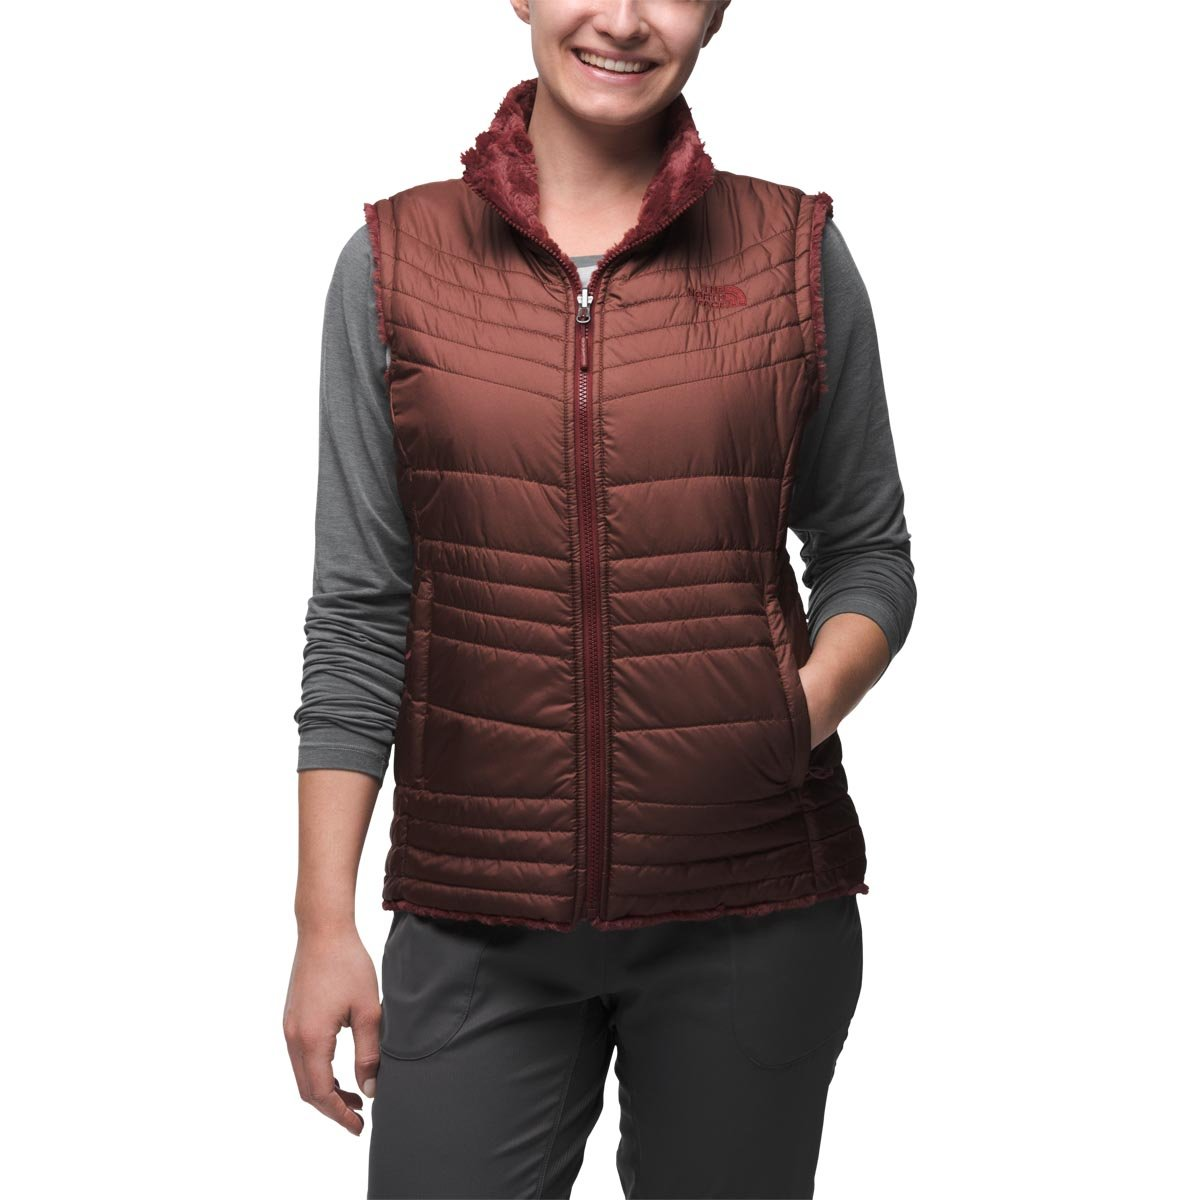 c7f1e03f1611 THE NORTH FACE Women s Mossbud Swirl Vest - Red -  Amazon.co.uk  Clothing